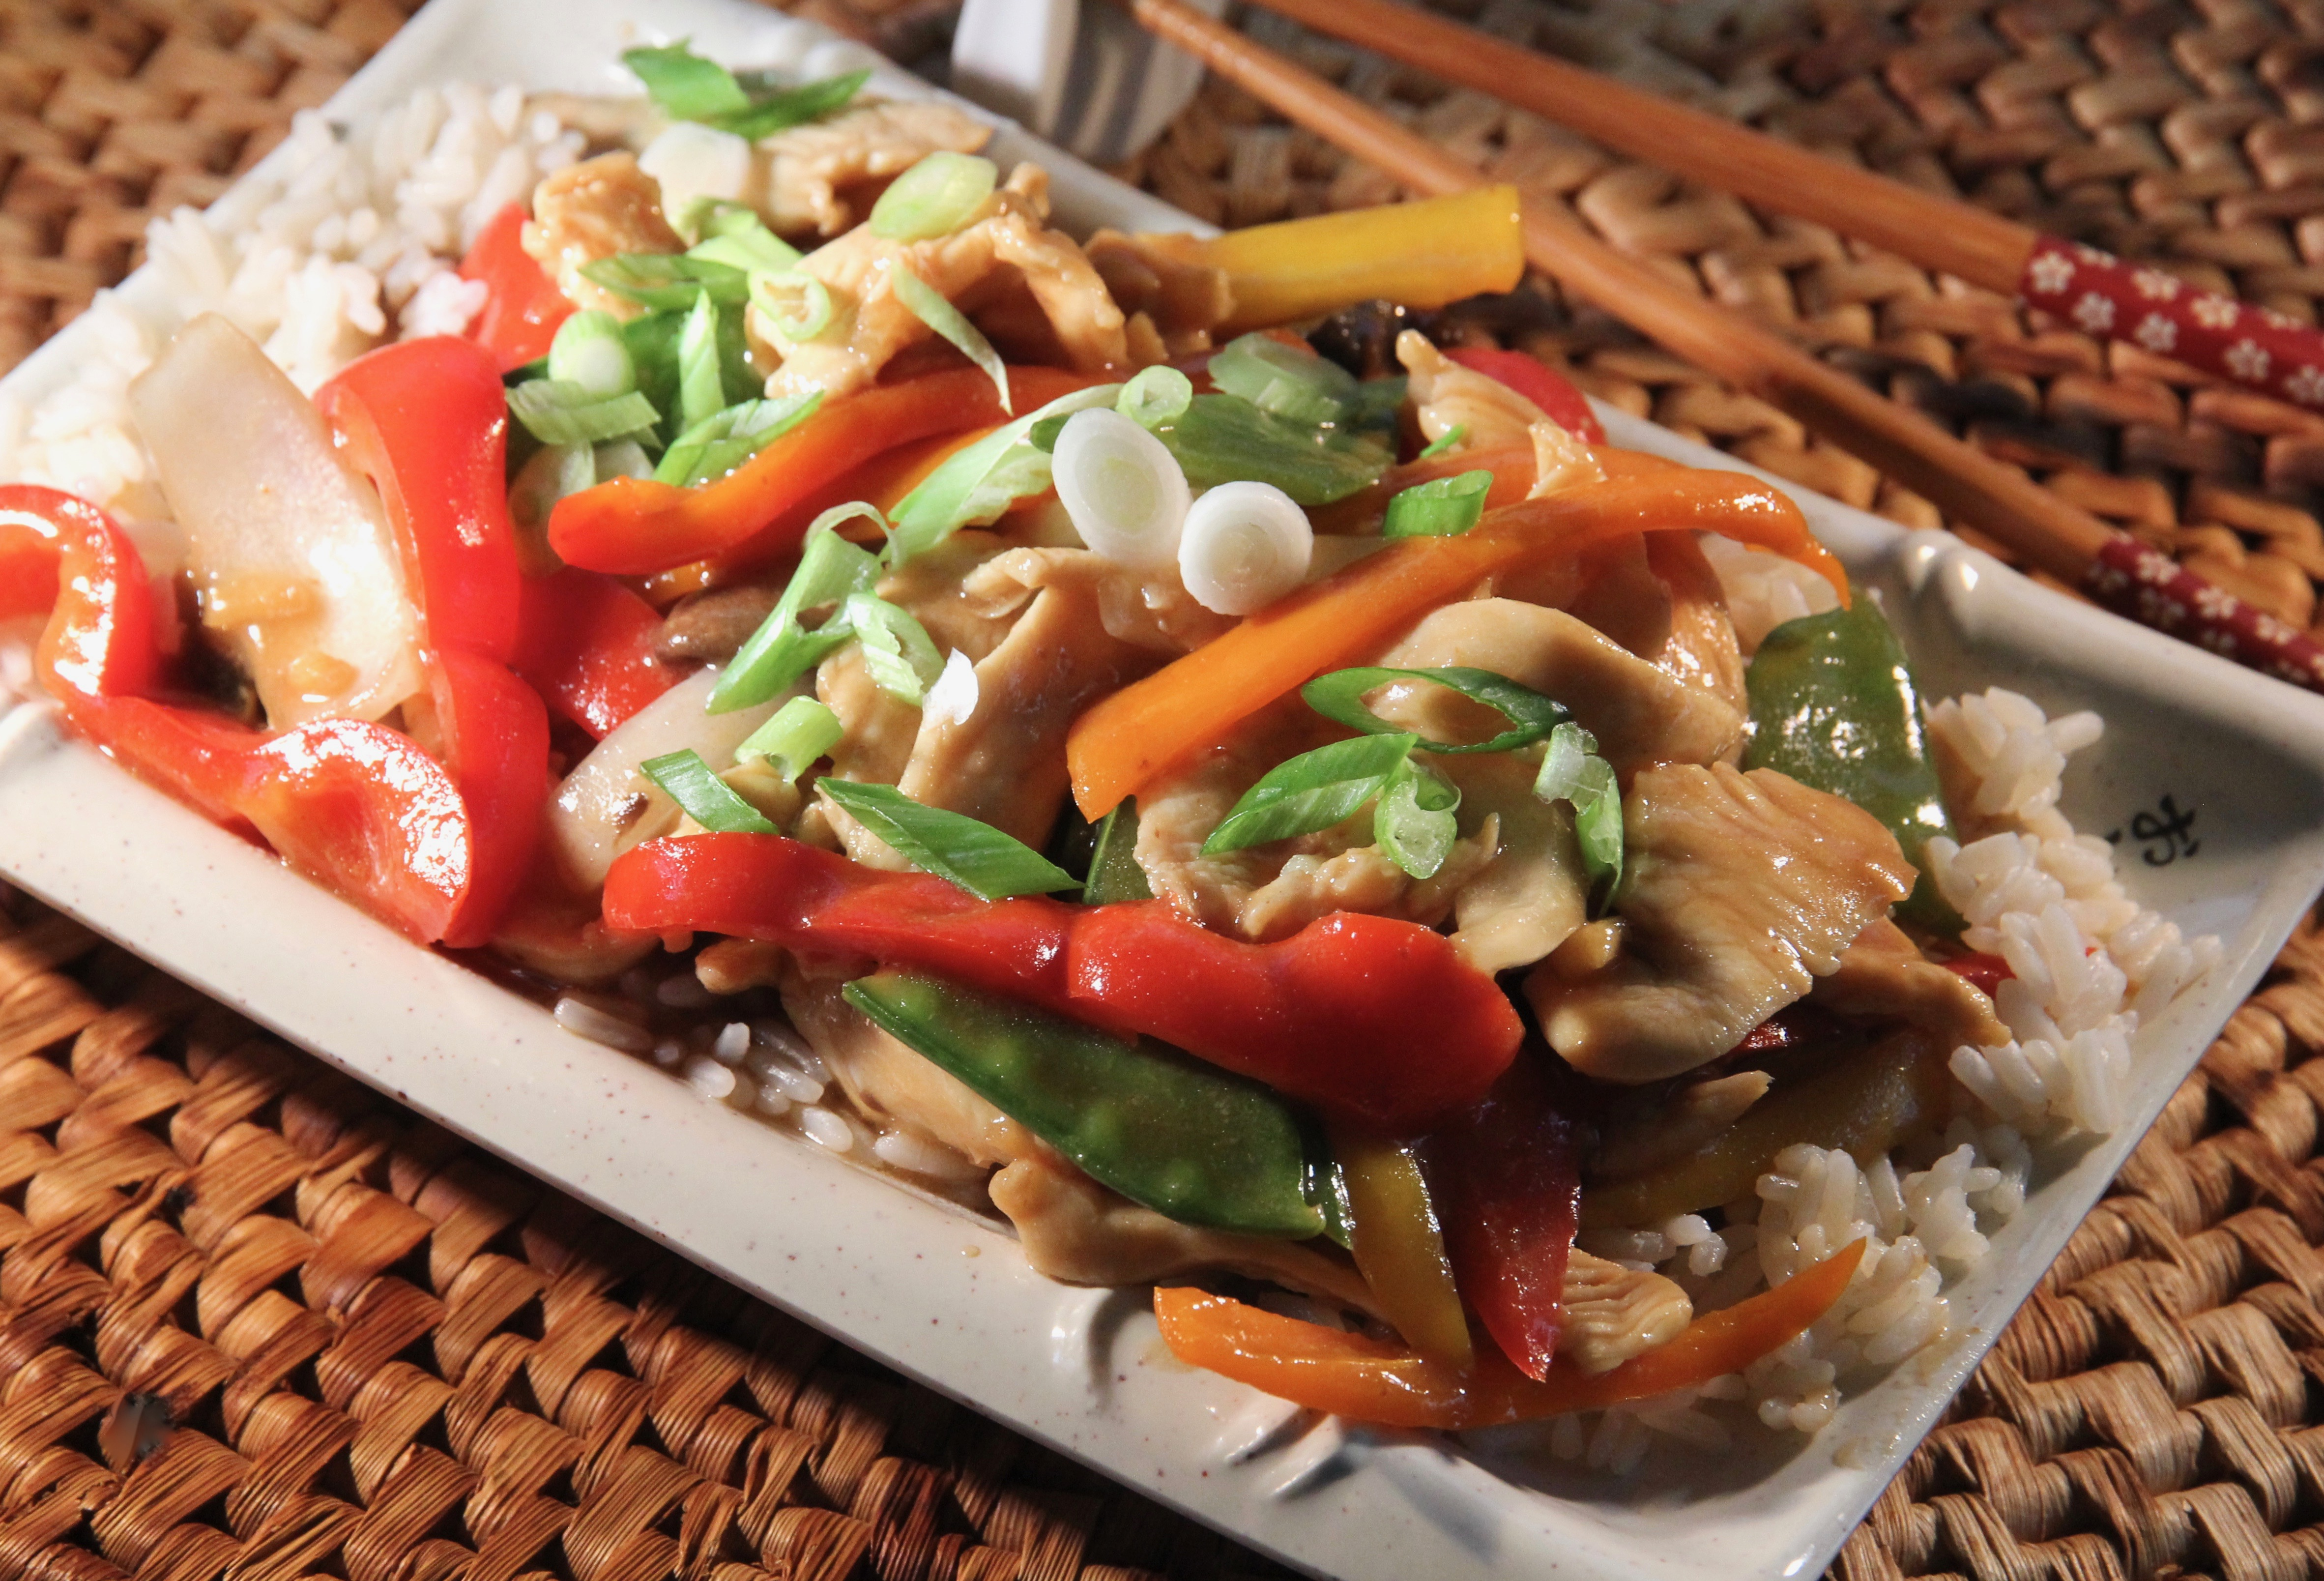 Ginger-Chicken Stir-Fry